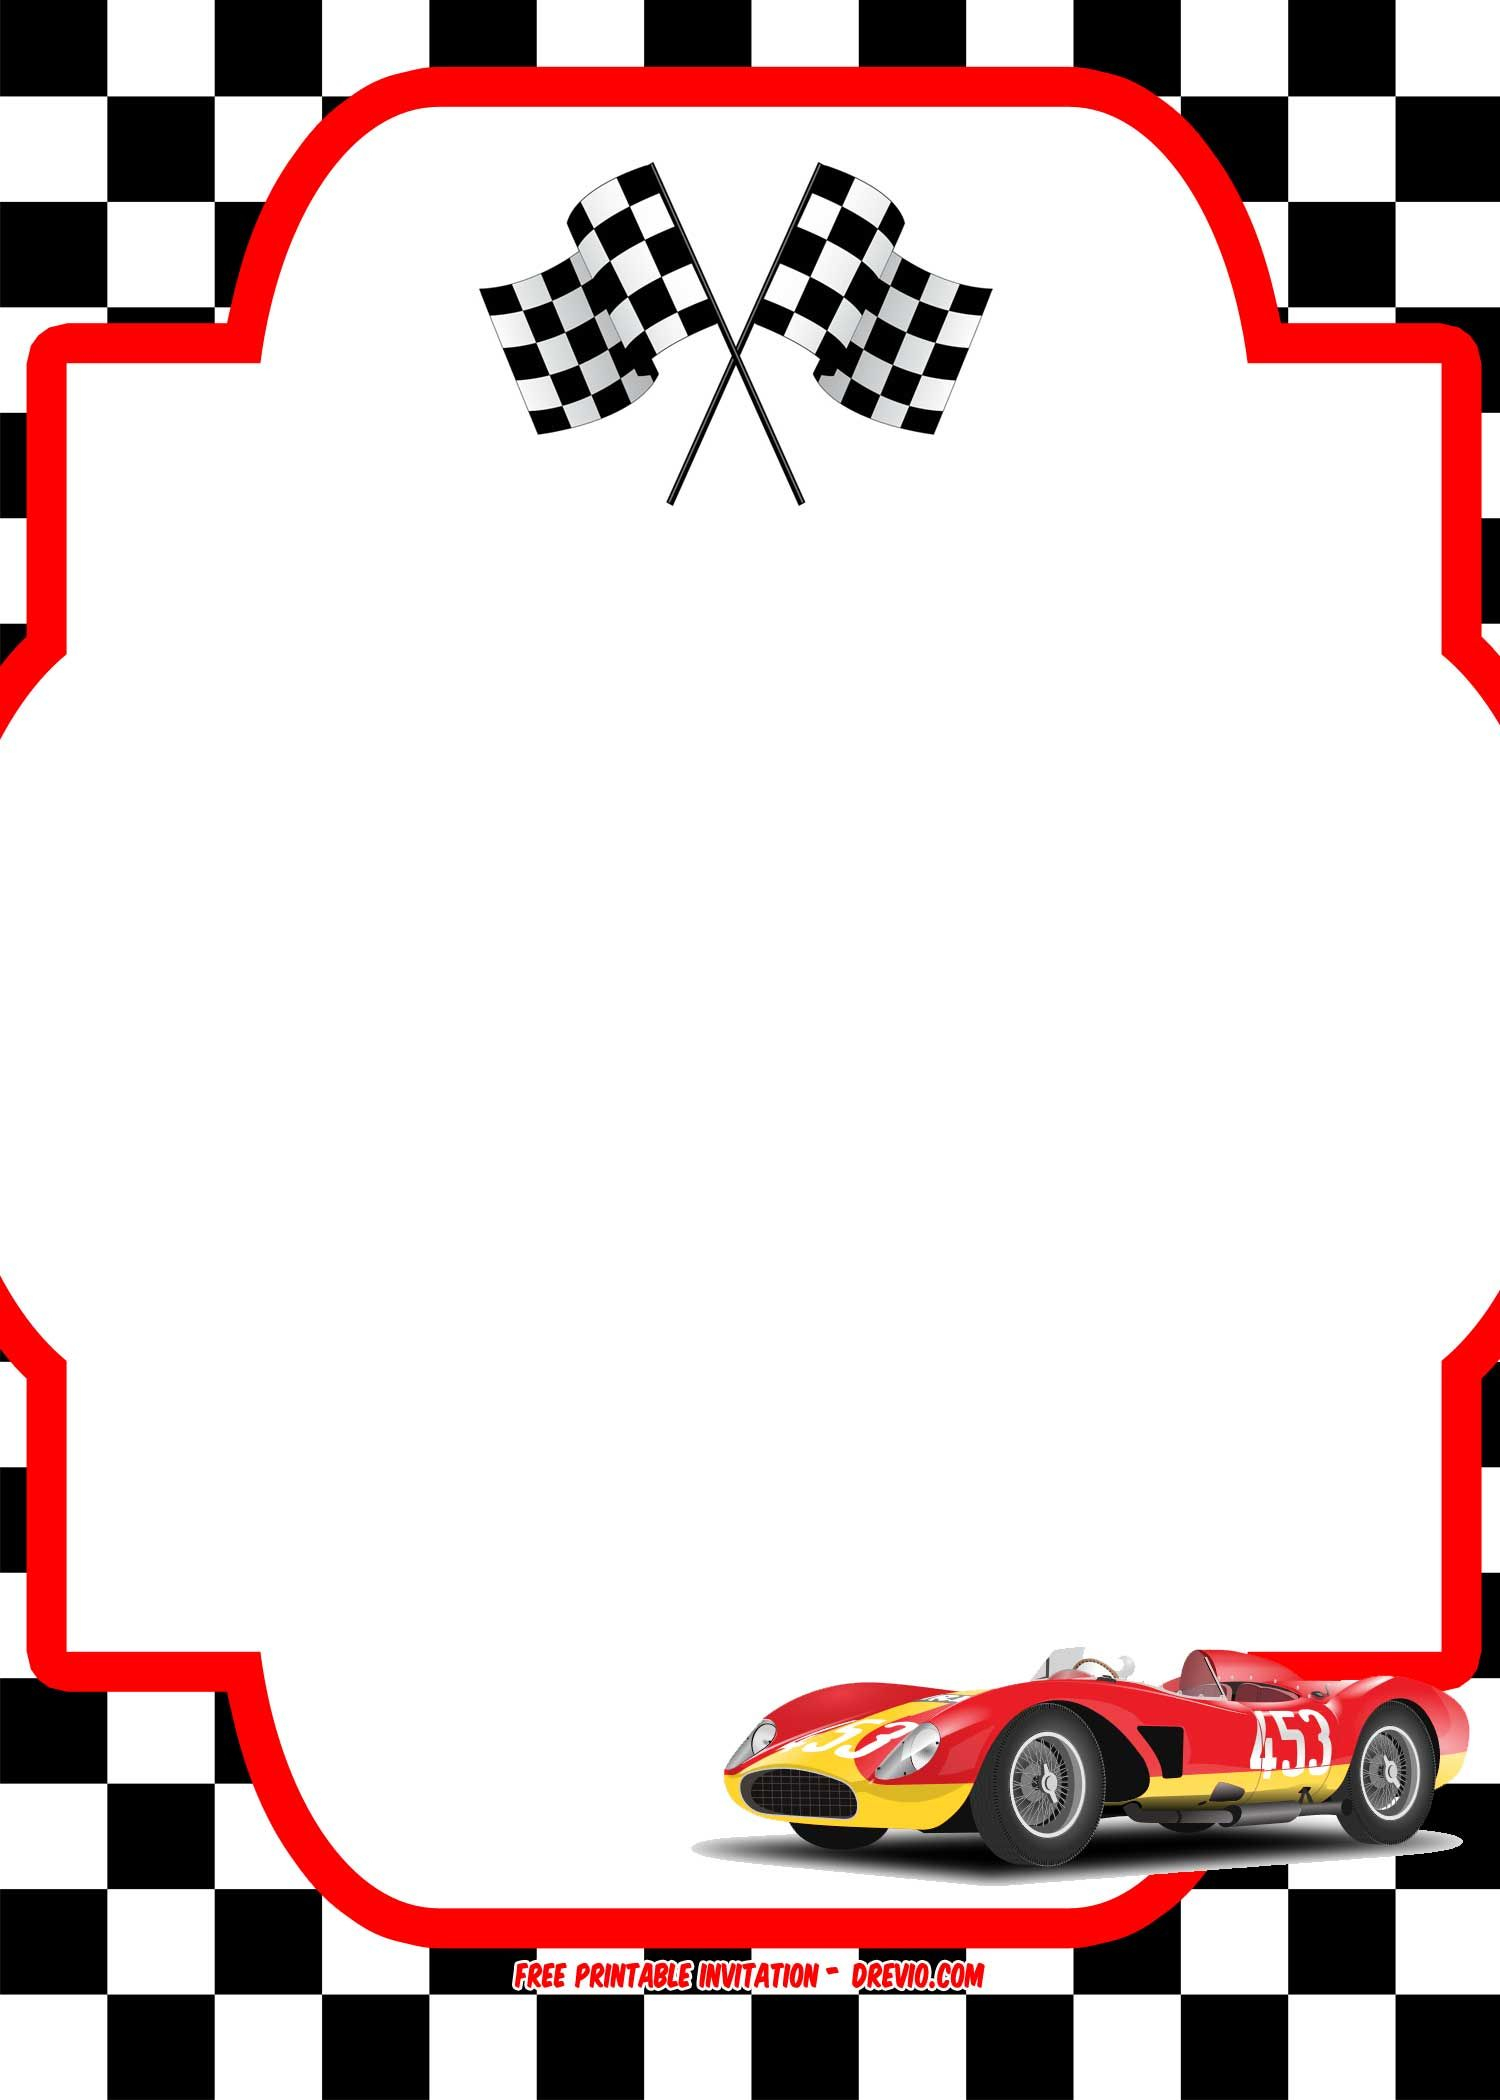 Free Race Car Birthday Invitation Template - | Free Printable - Free Printable Birthday Invitations Cars Theme